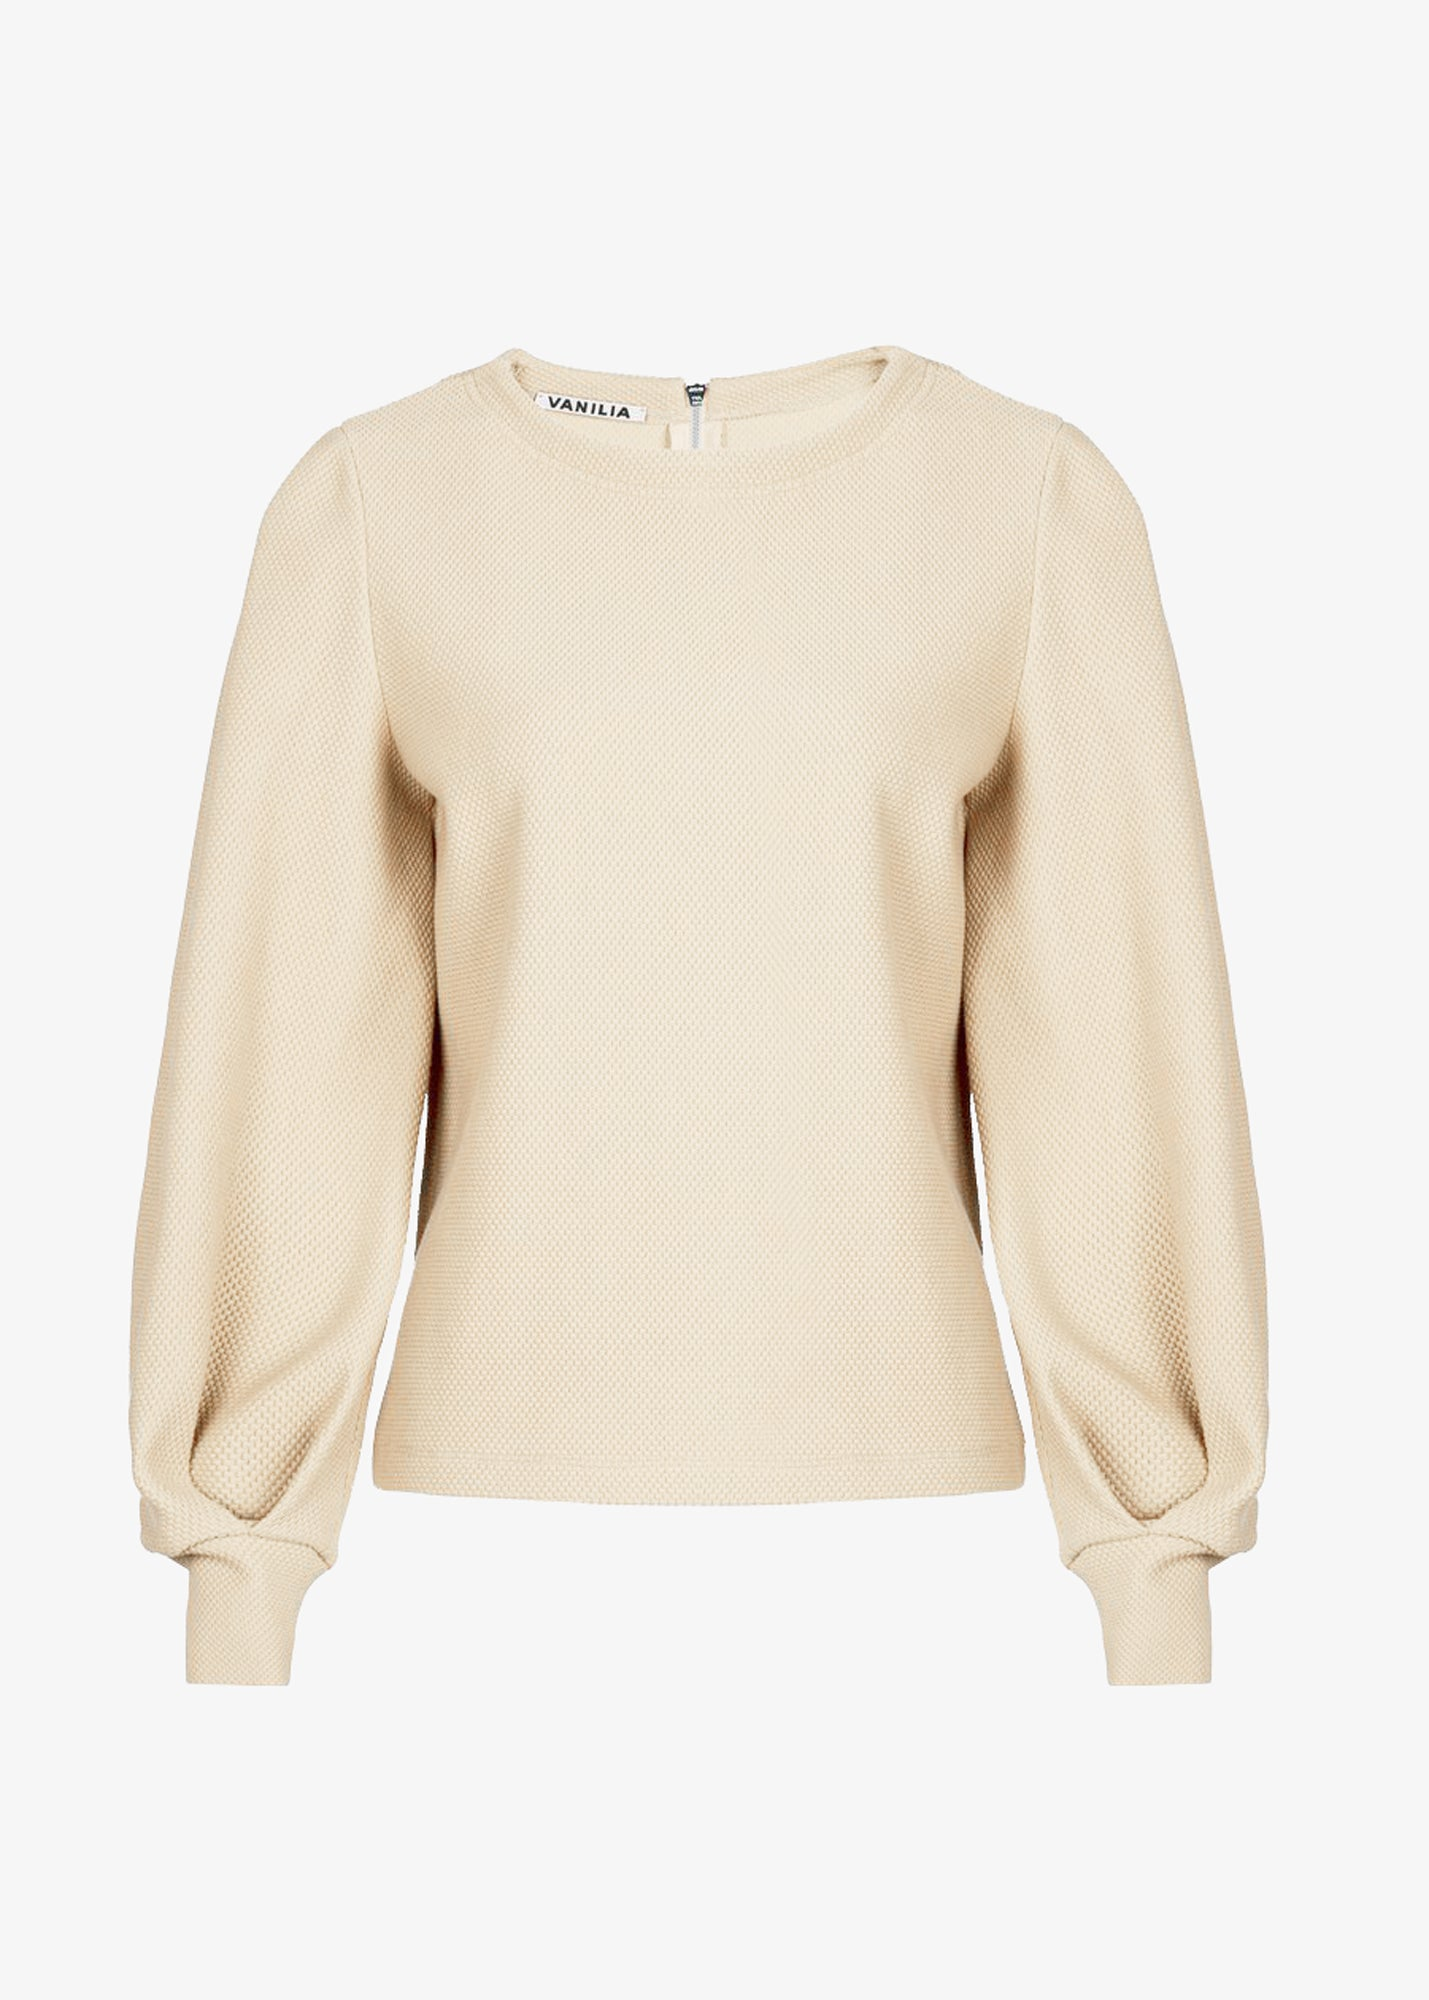 Dames sweater in beige